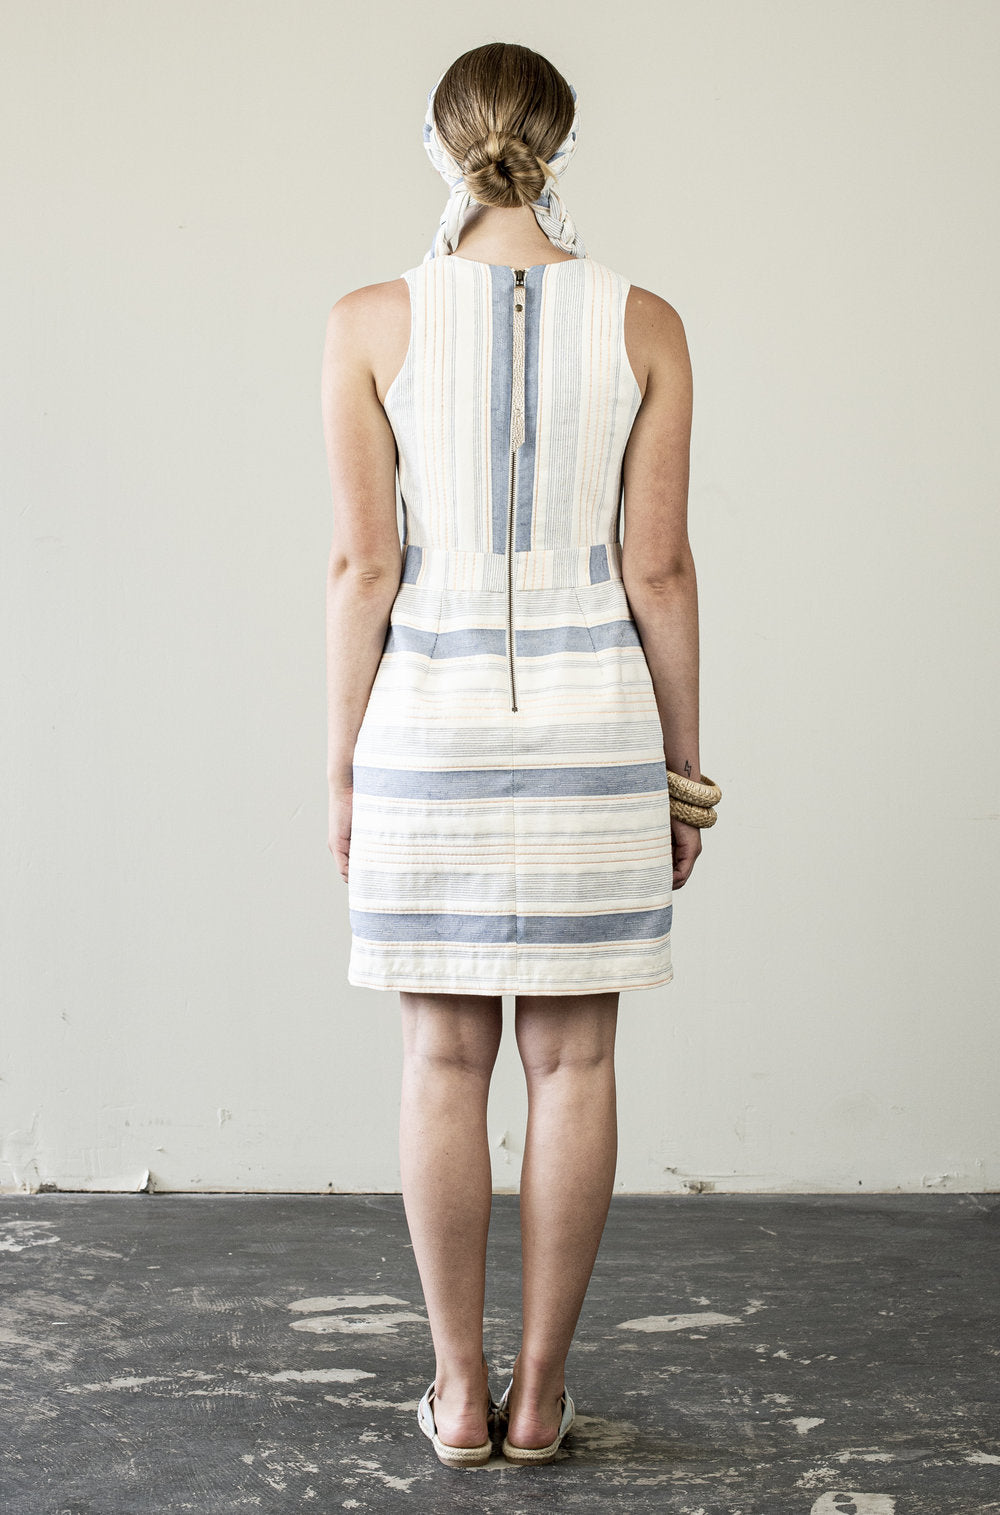 Bodybag by Jude // Tulum Dress